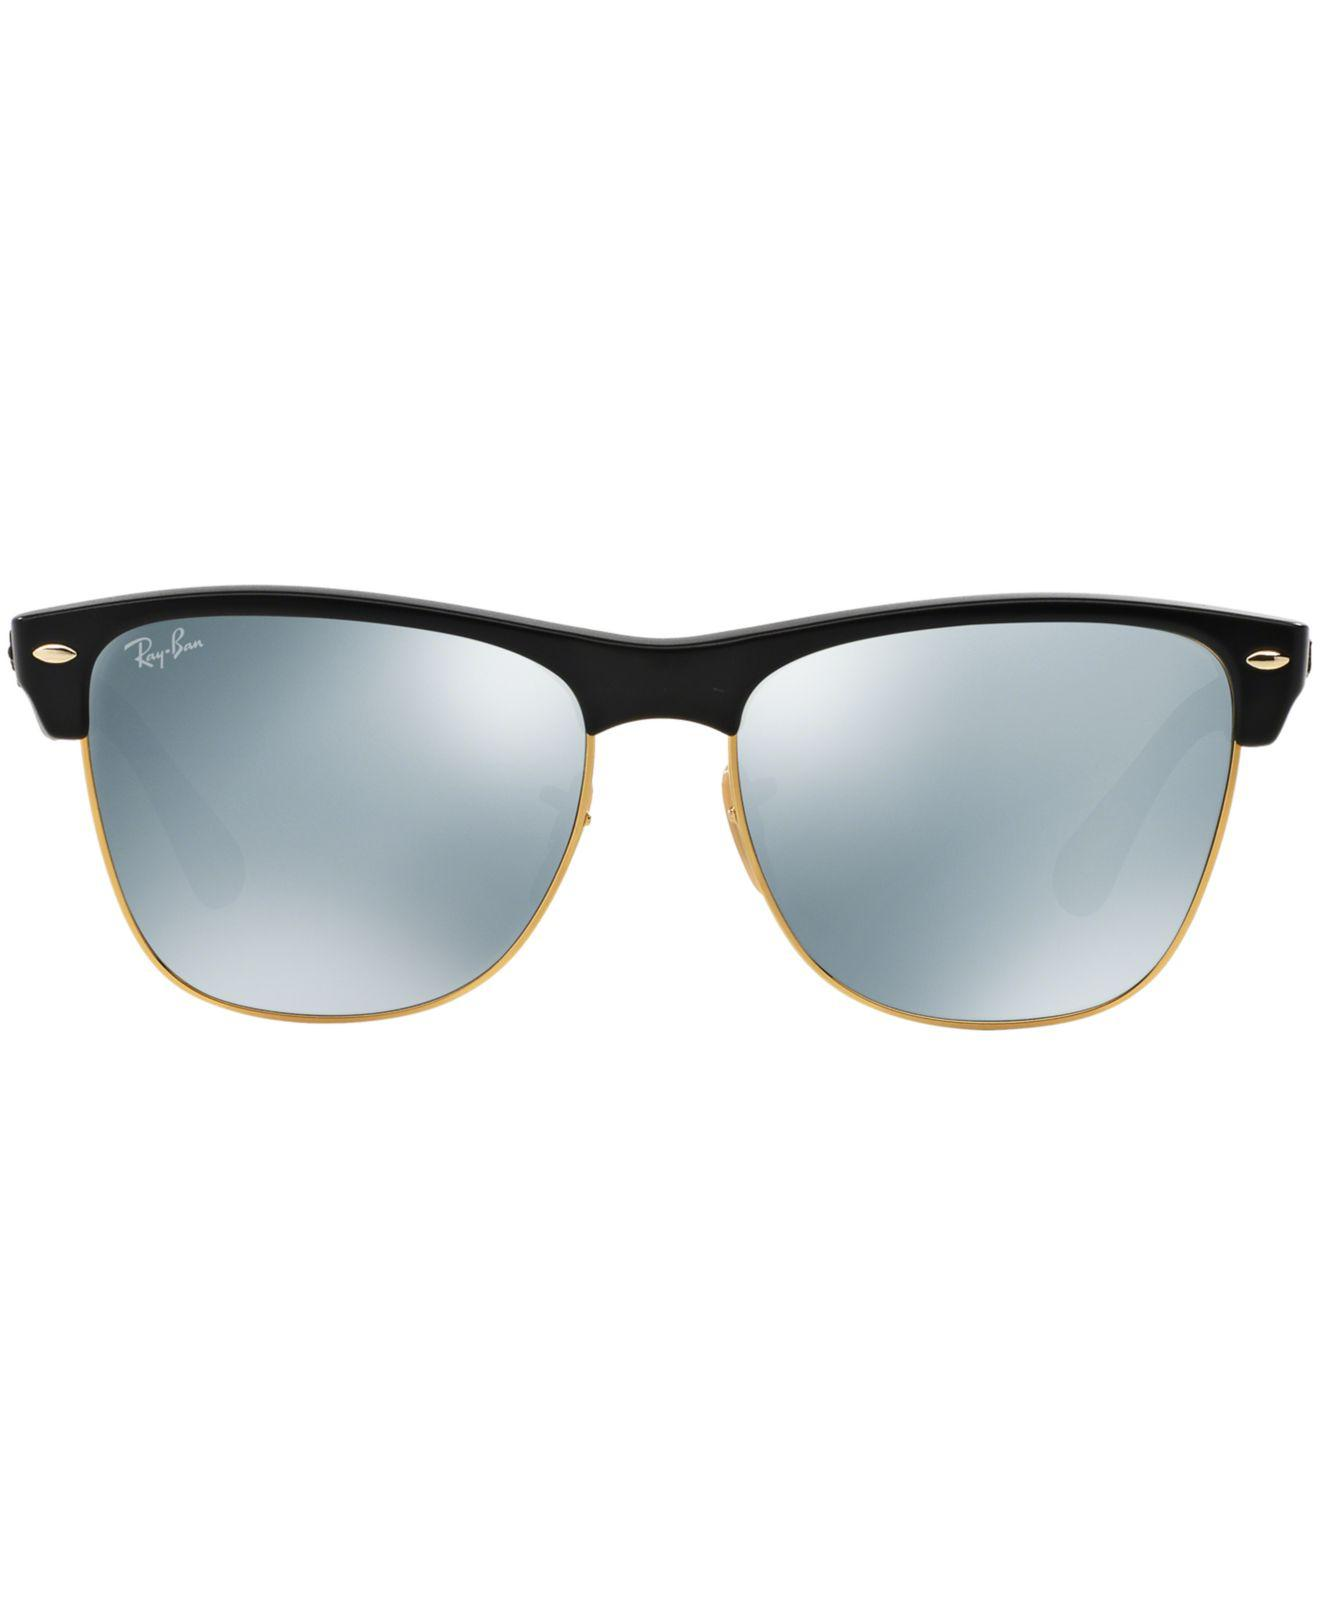 4a1fd11f55 ... purchase lyst ray ban sunglasses rb4175 57 clubmaster oversized in black  for men 736e8 76297